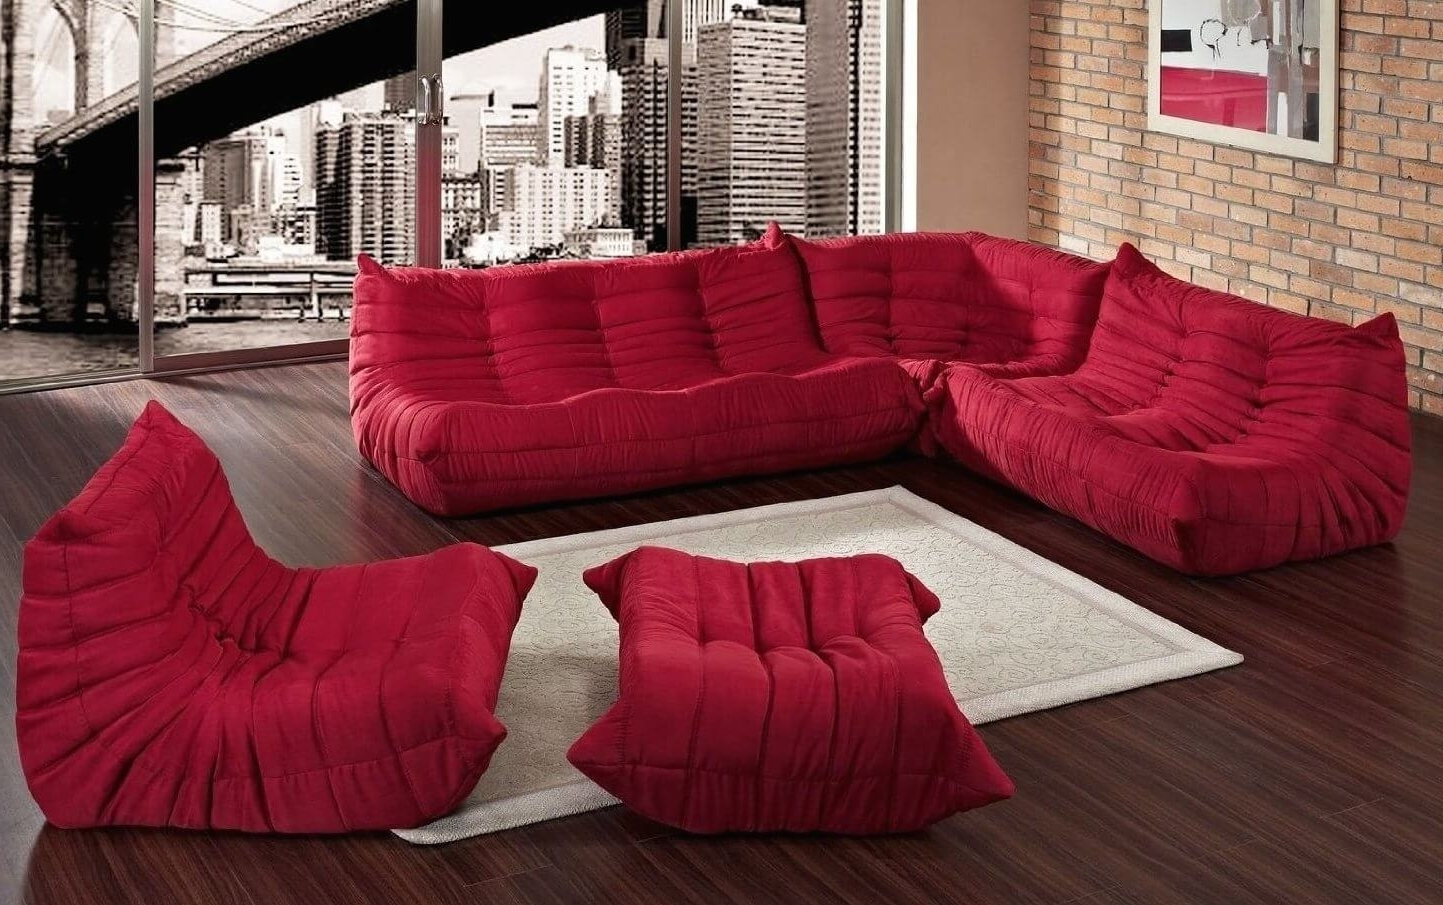 20 Types Of Modular Sectional Sofas Intended For Current Sectional Sofas That Can Be Rearranged (View 11 of 15)